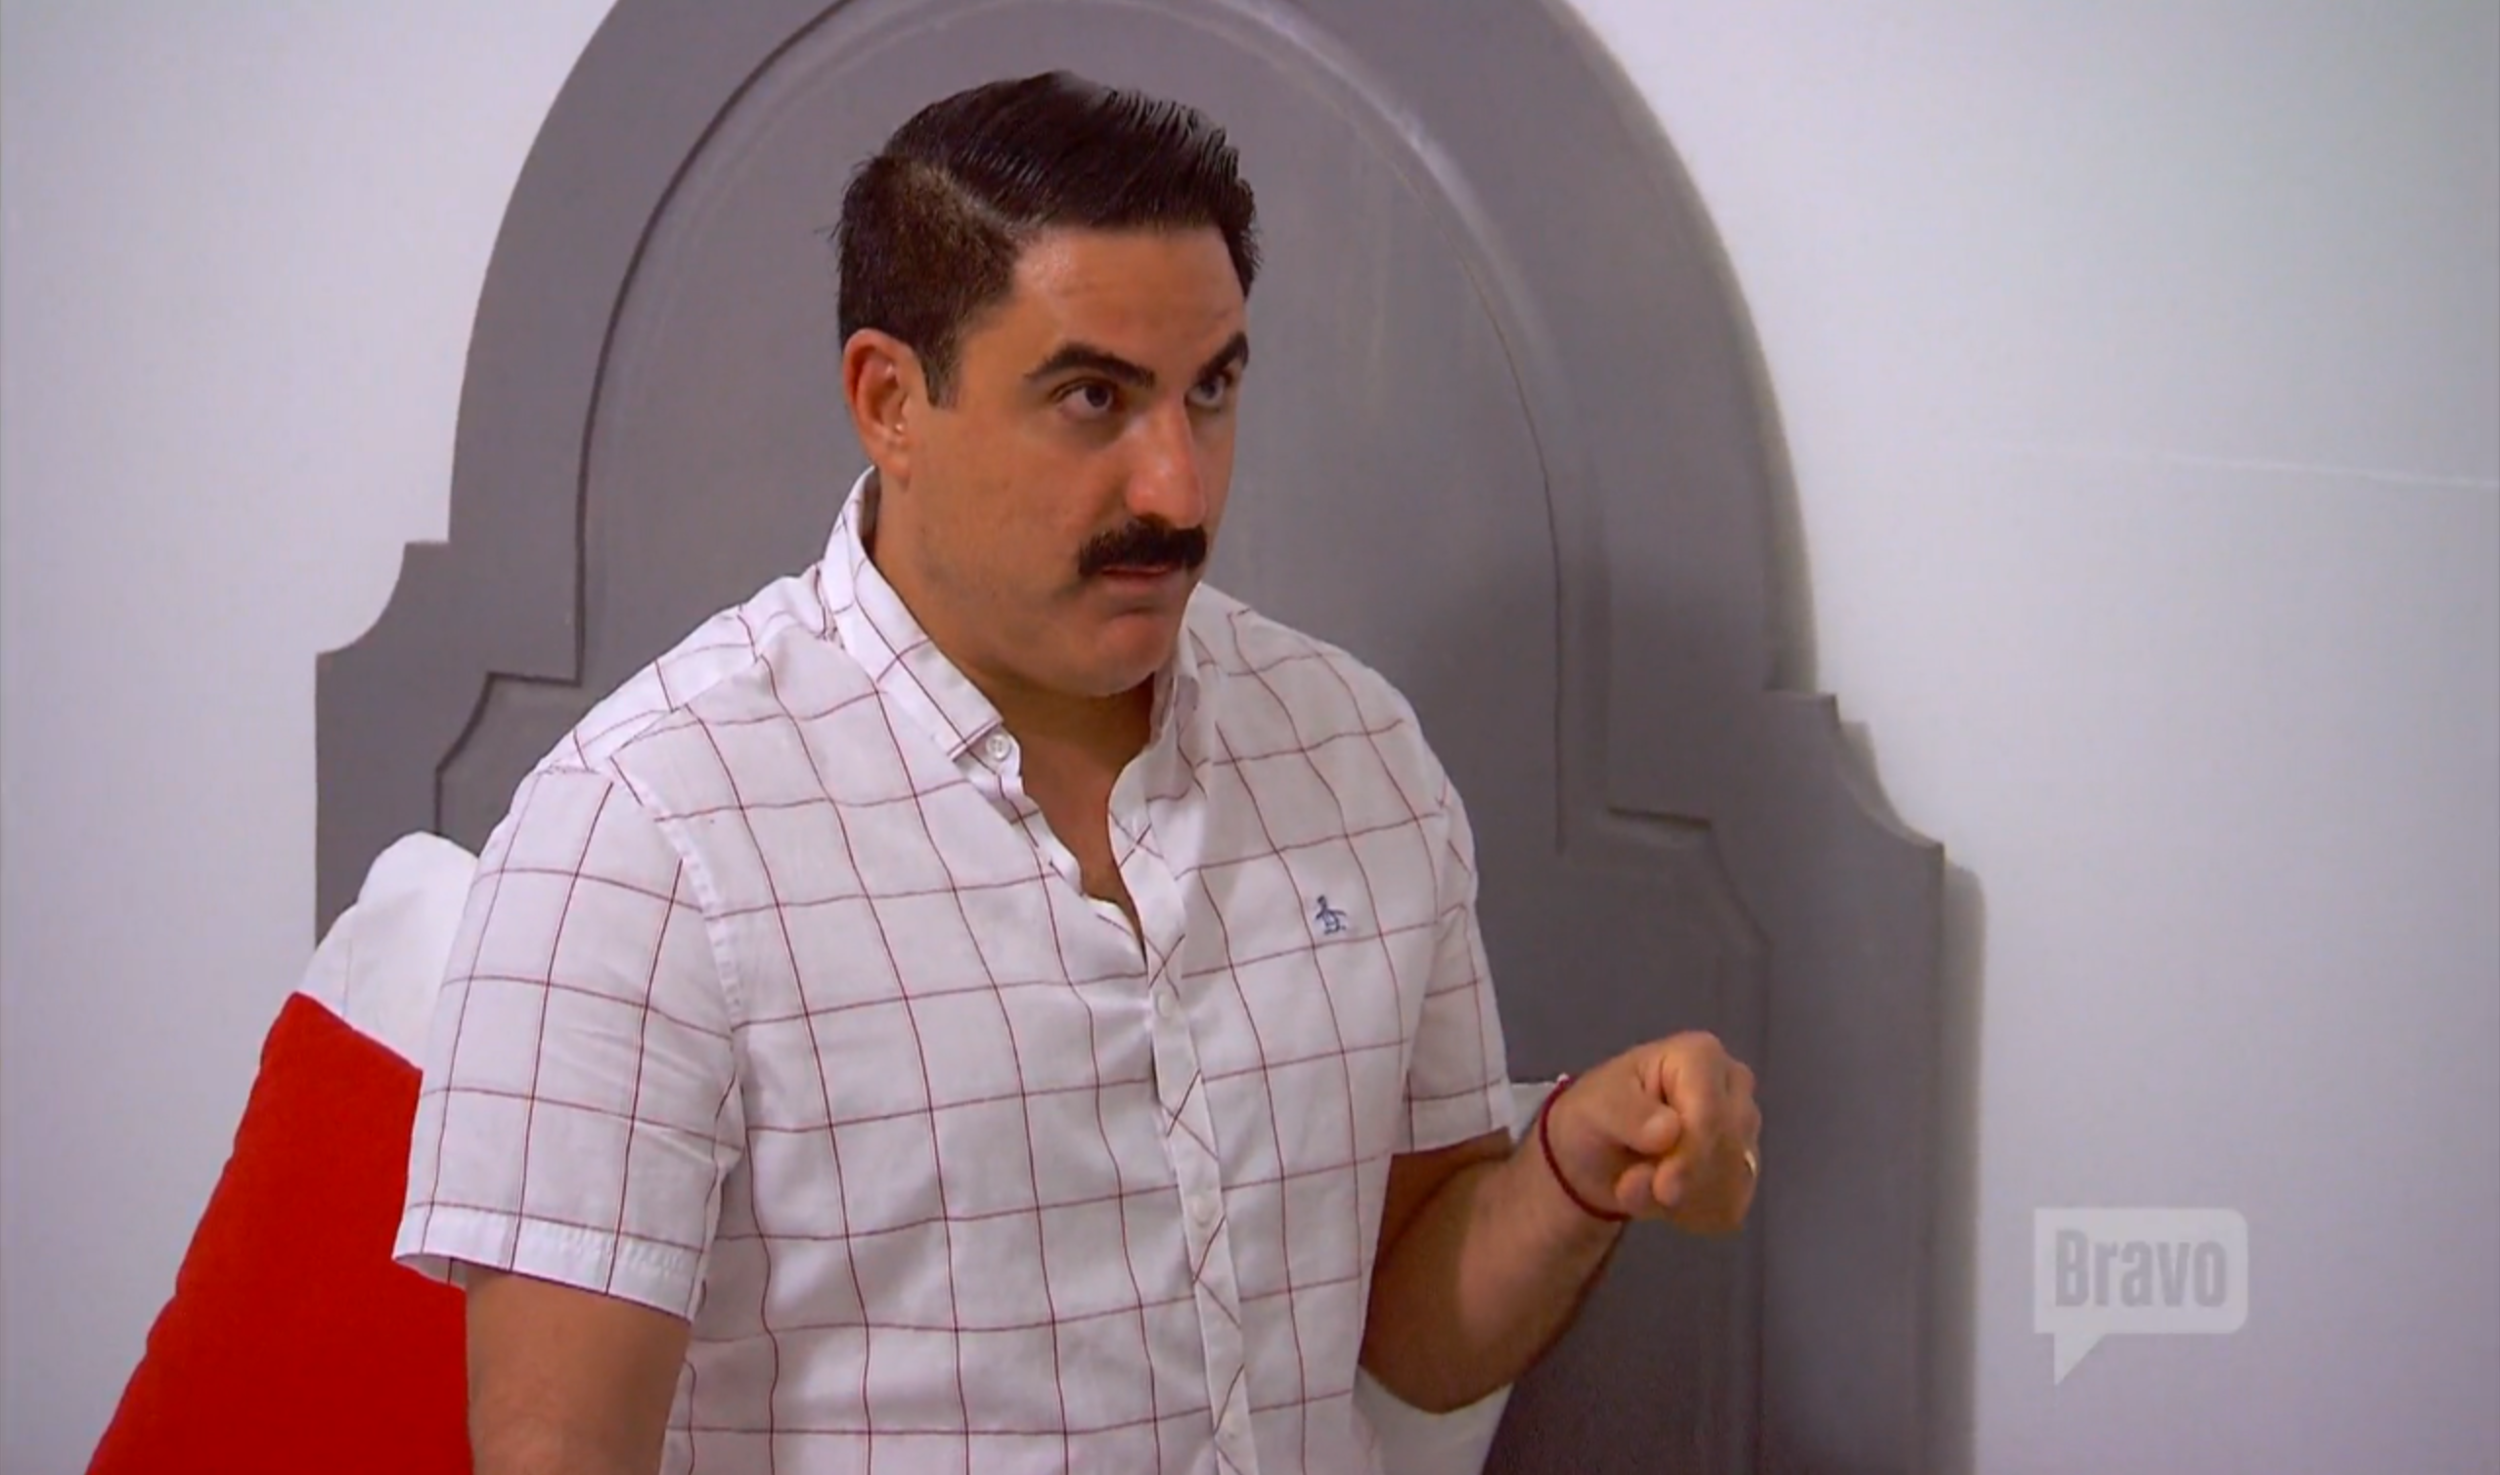 shahs-of-sunset-reza-farahan